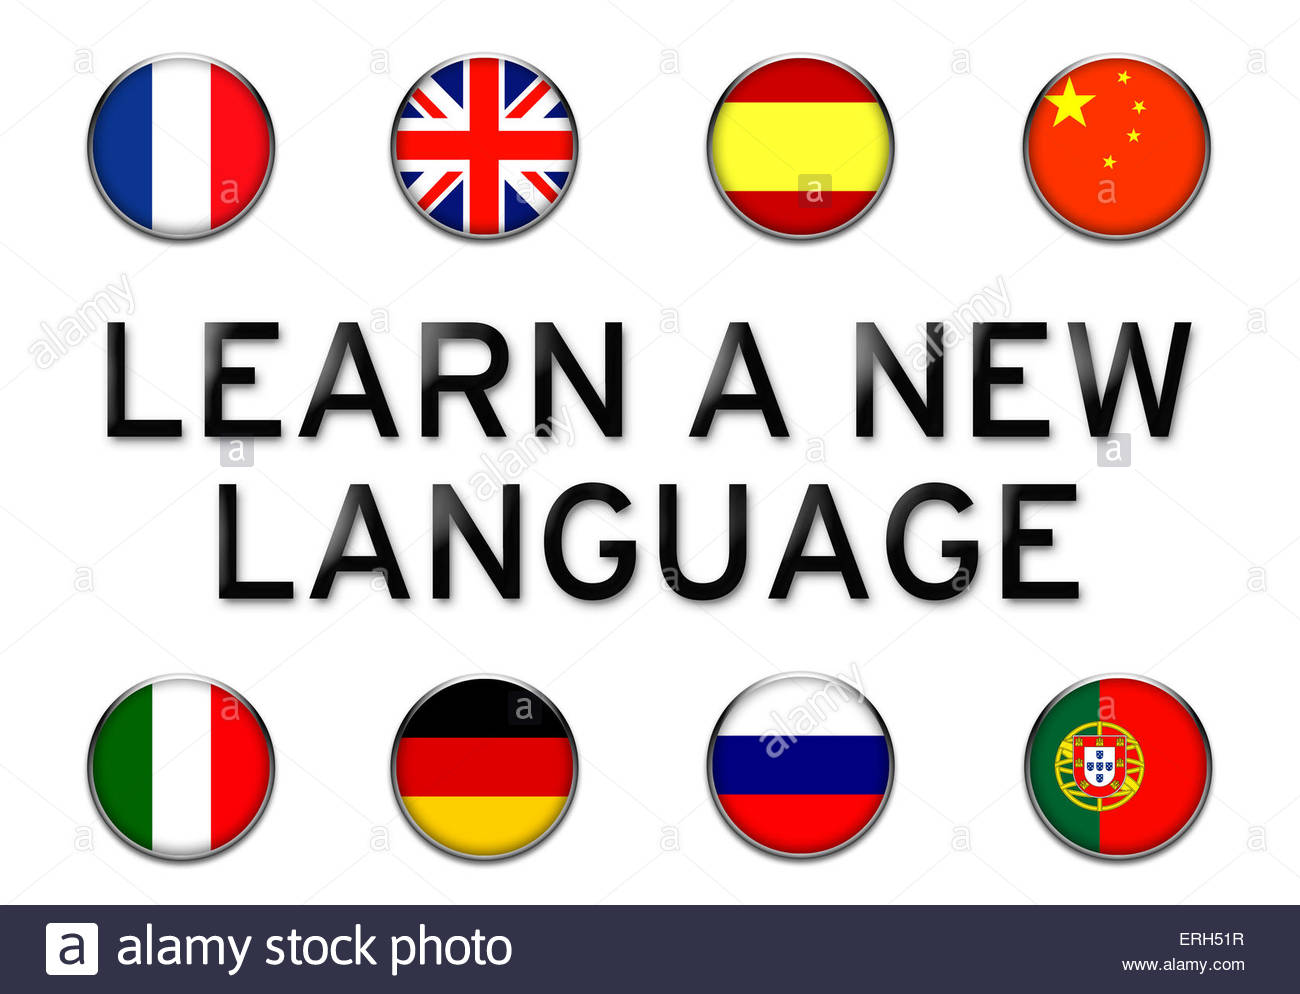 Learn a new language - Stock Image